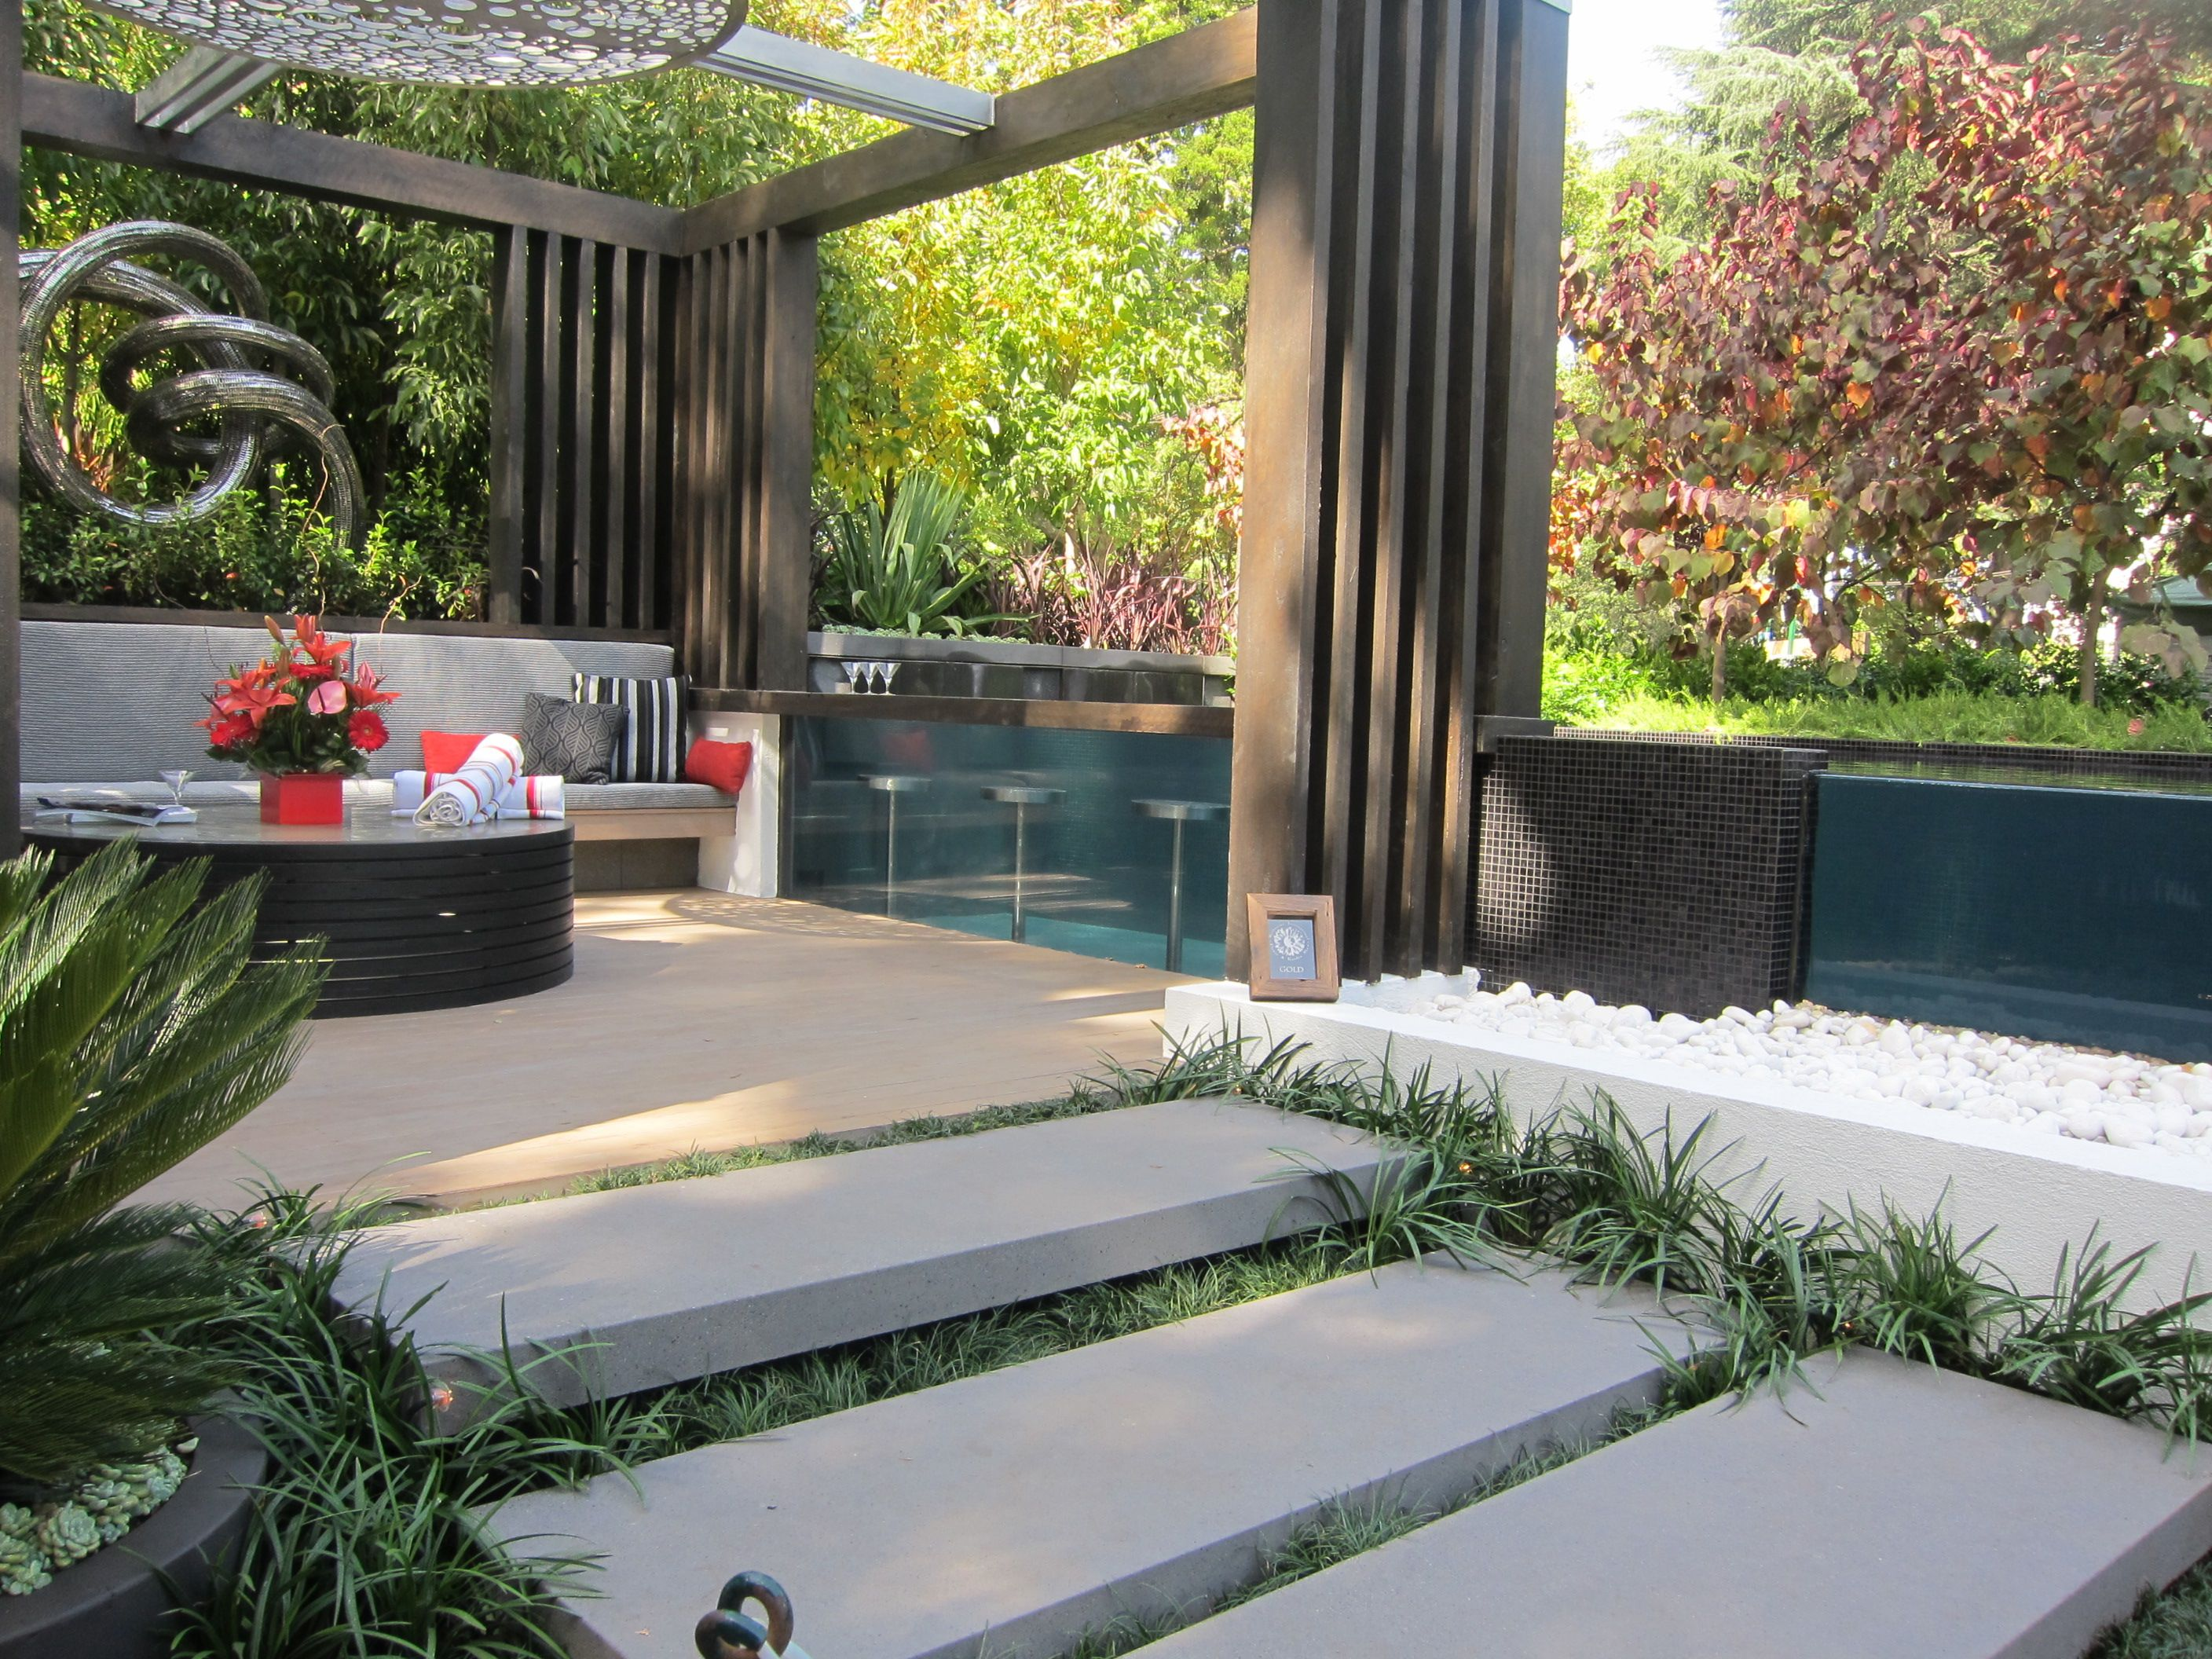 Modern garden design with pool - Pools In Small Backyards Outdoor Kitchen Designs Landscaping Ideas For Landscape Design Australia Good Dining Sets